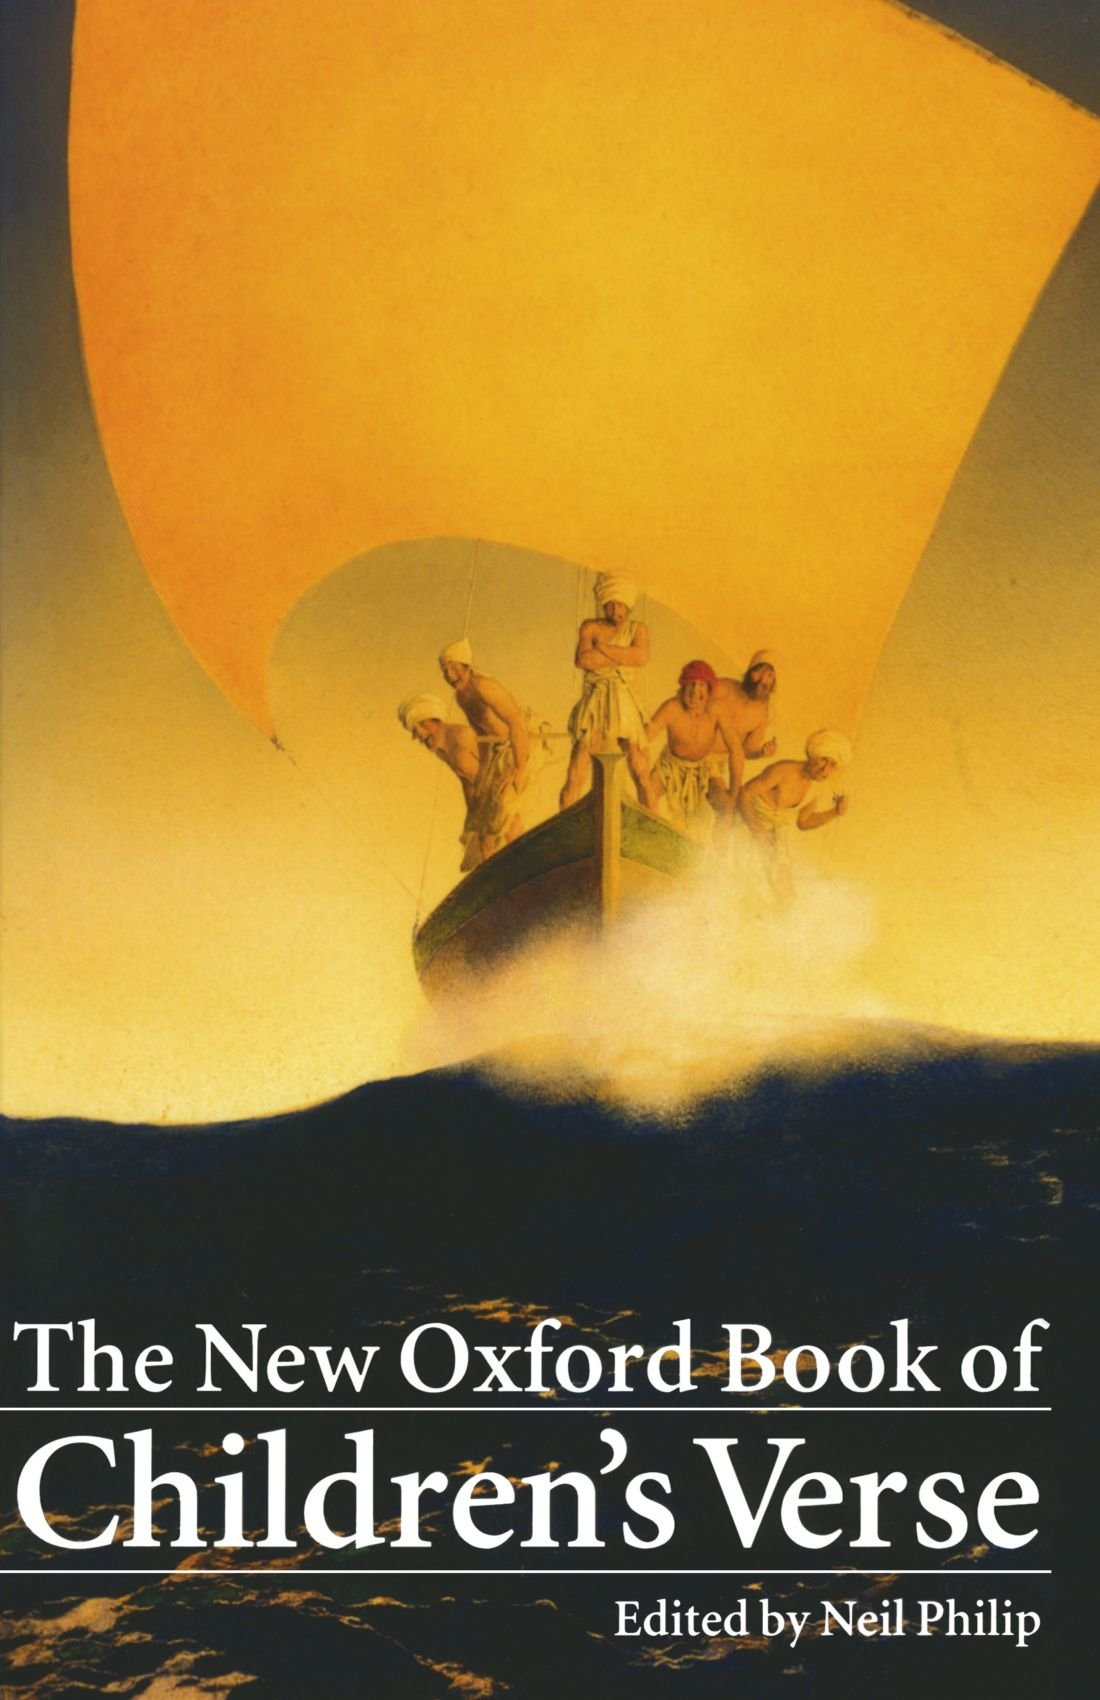 The New Oxford Book of Children's Verse (Oxford Books of Verse) by imusti